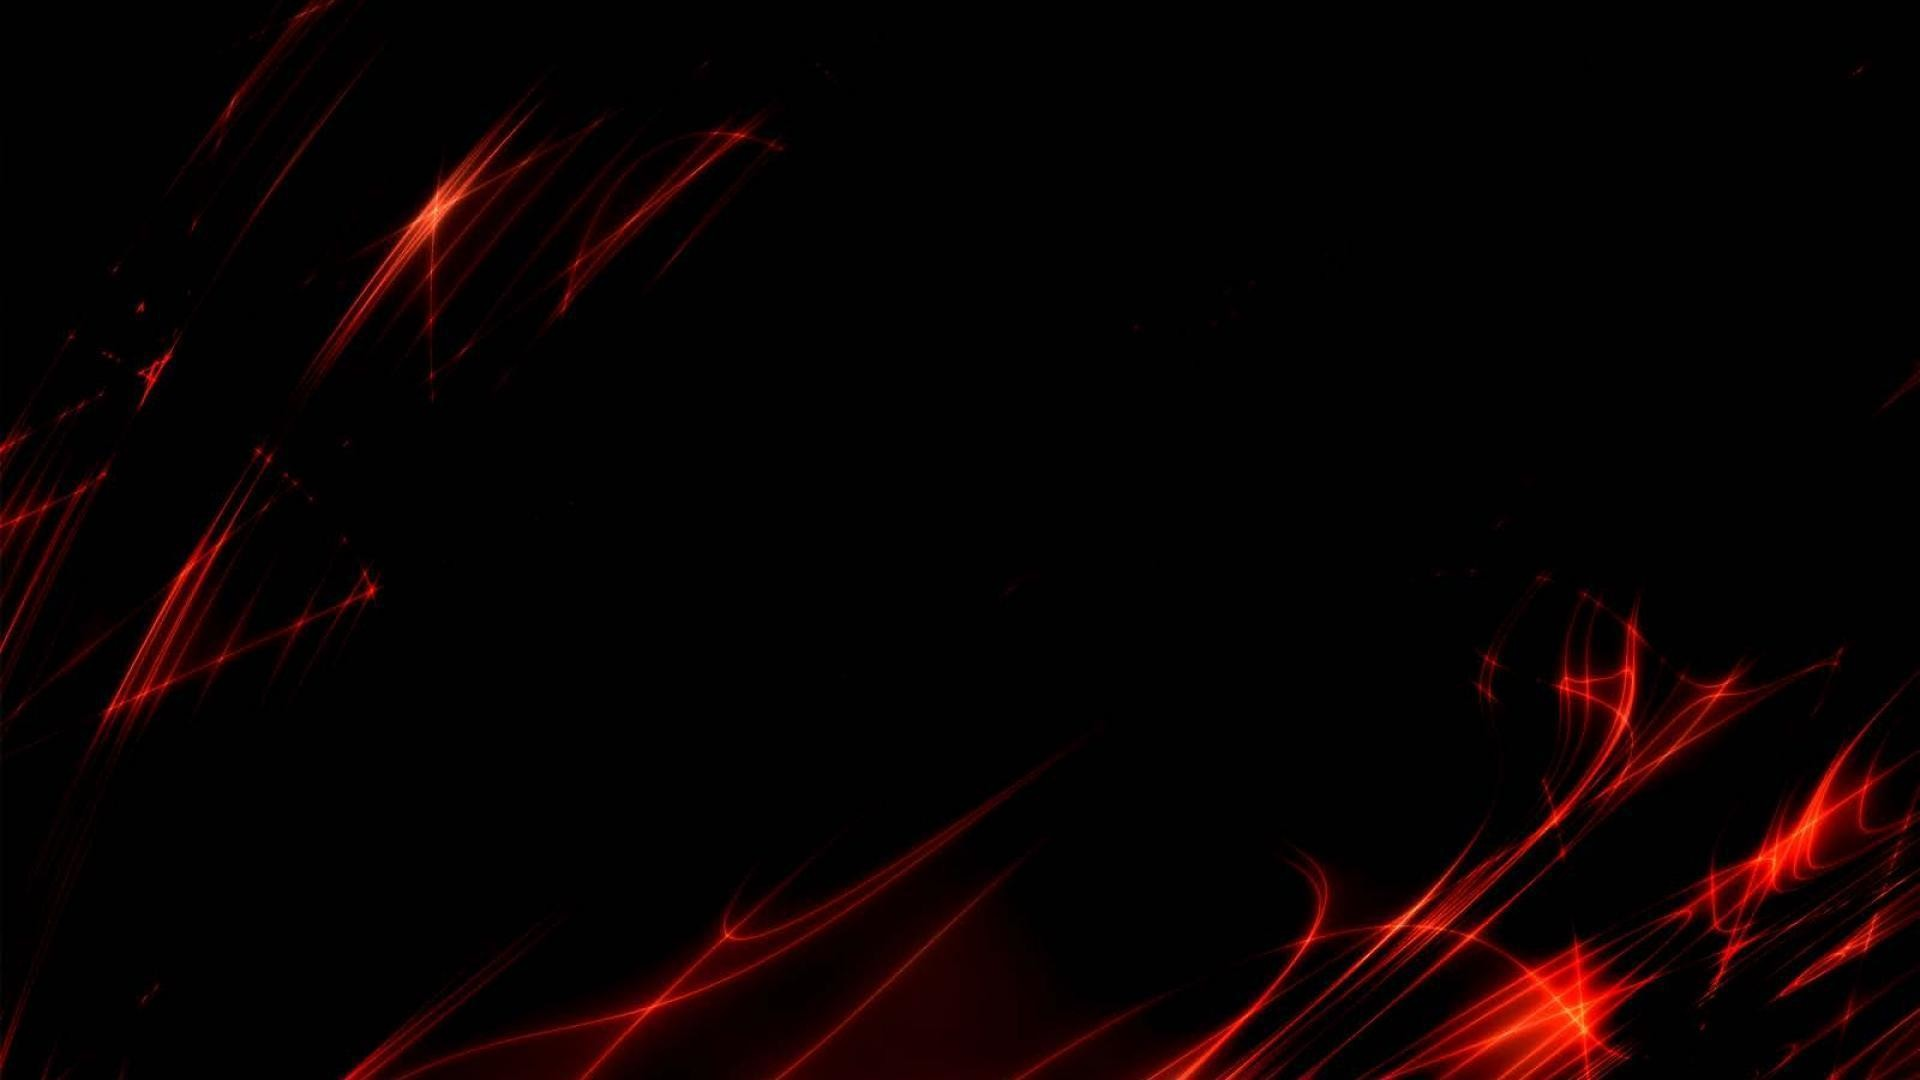 Dark Red Wallpaper HD (65+ Images